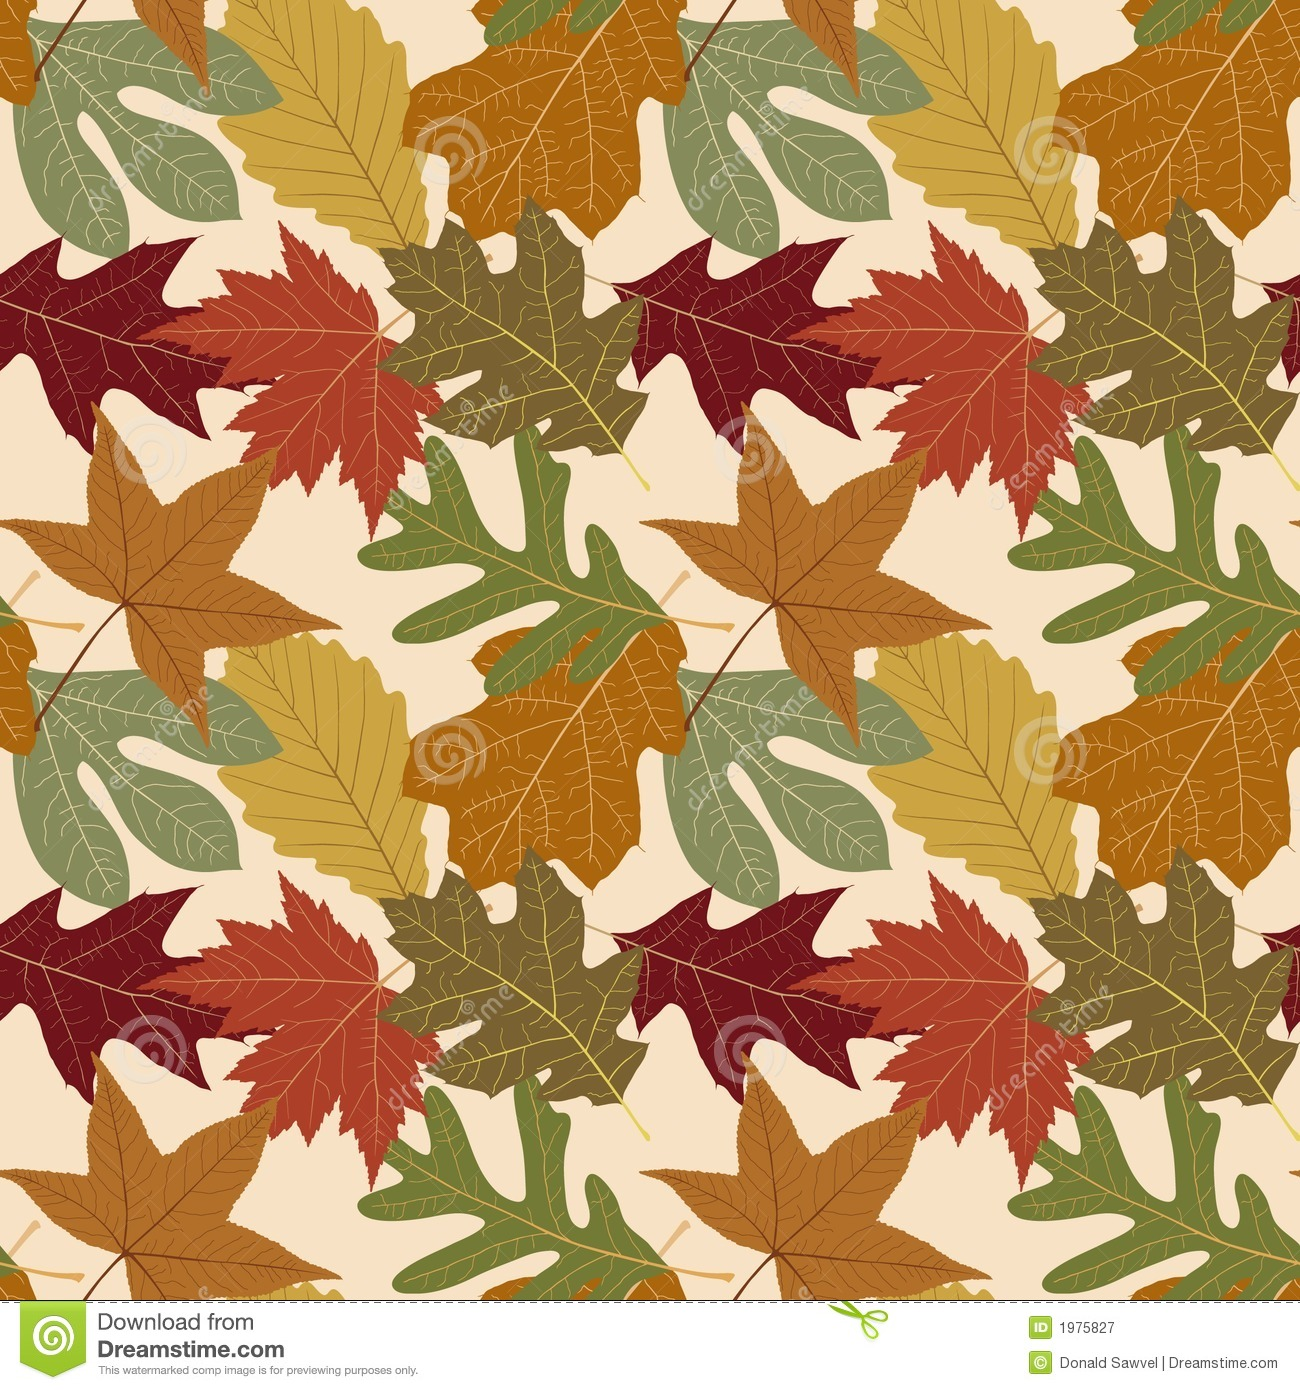 Fall Wallpaper Themes Seamless Repeating Fall Leaf Background Royalty Free Stock